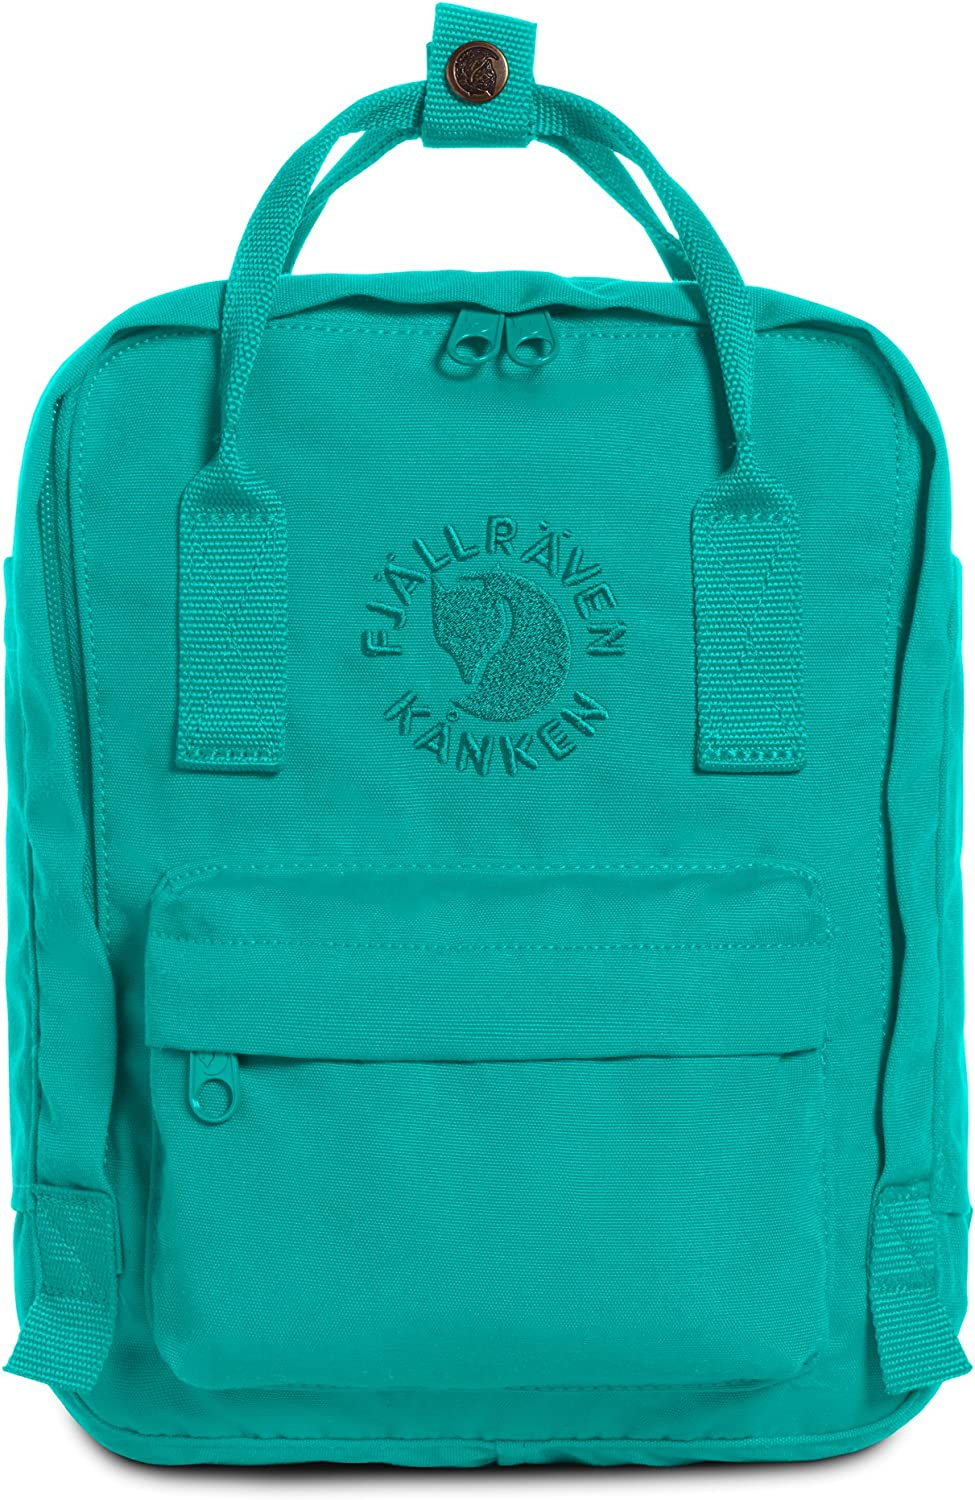 Fjallraven, Kanken, Re-Kanken Mini Recycled Backpack for Everyday Use, Heritage and Responsibility Since 1960